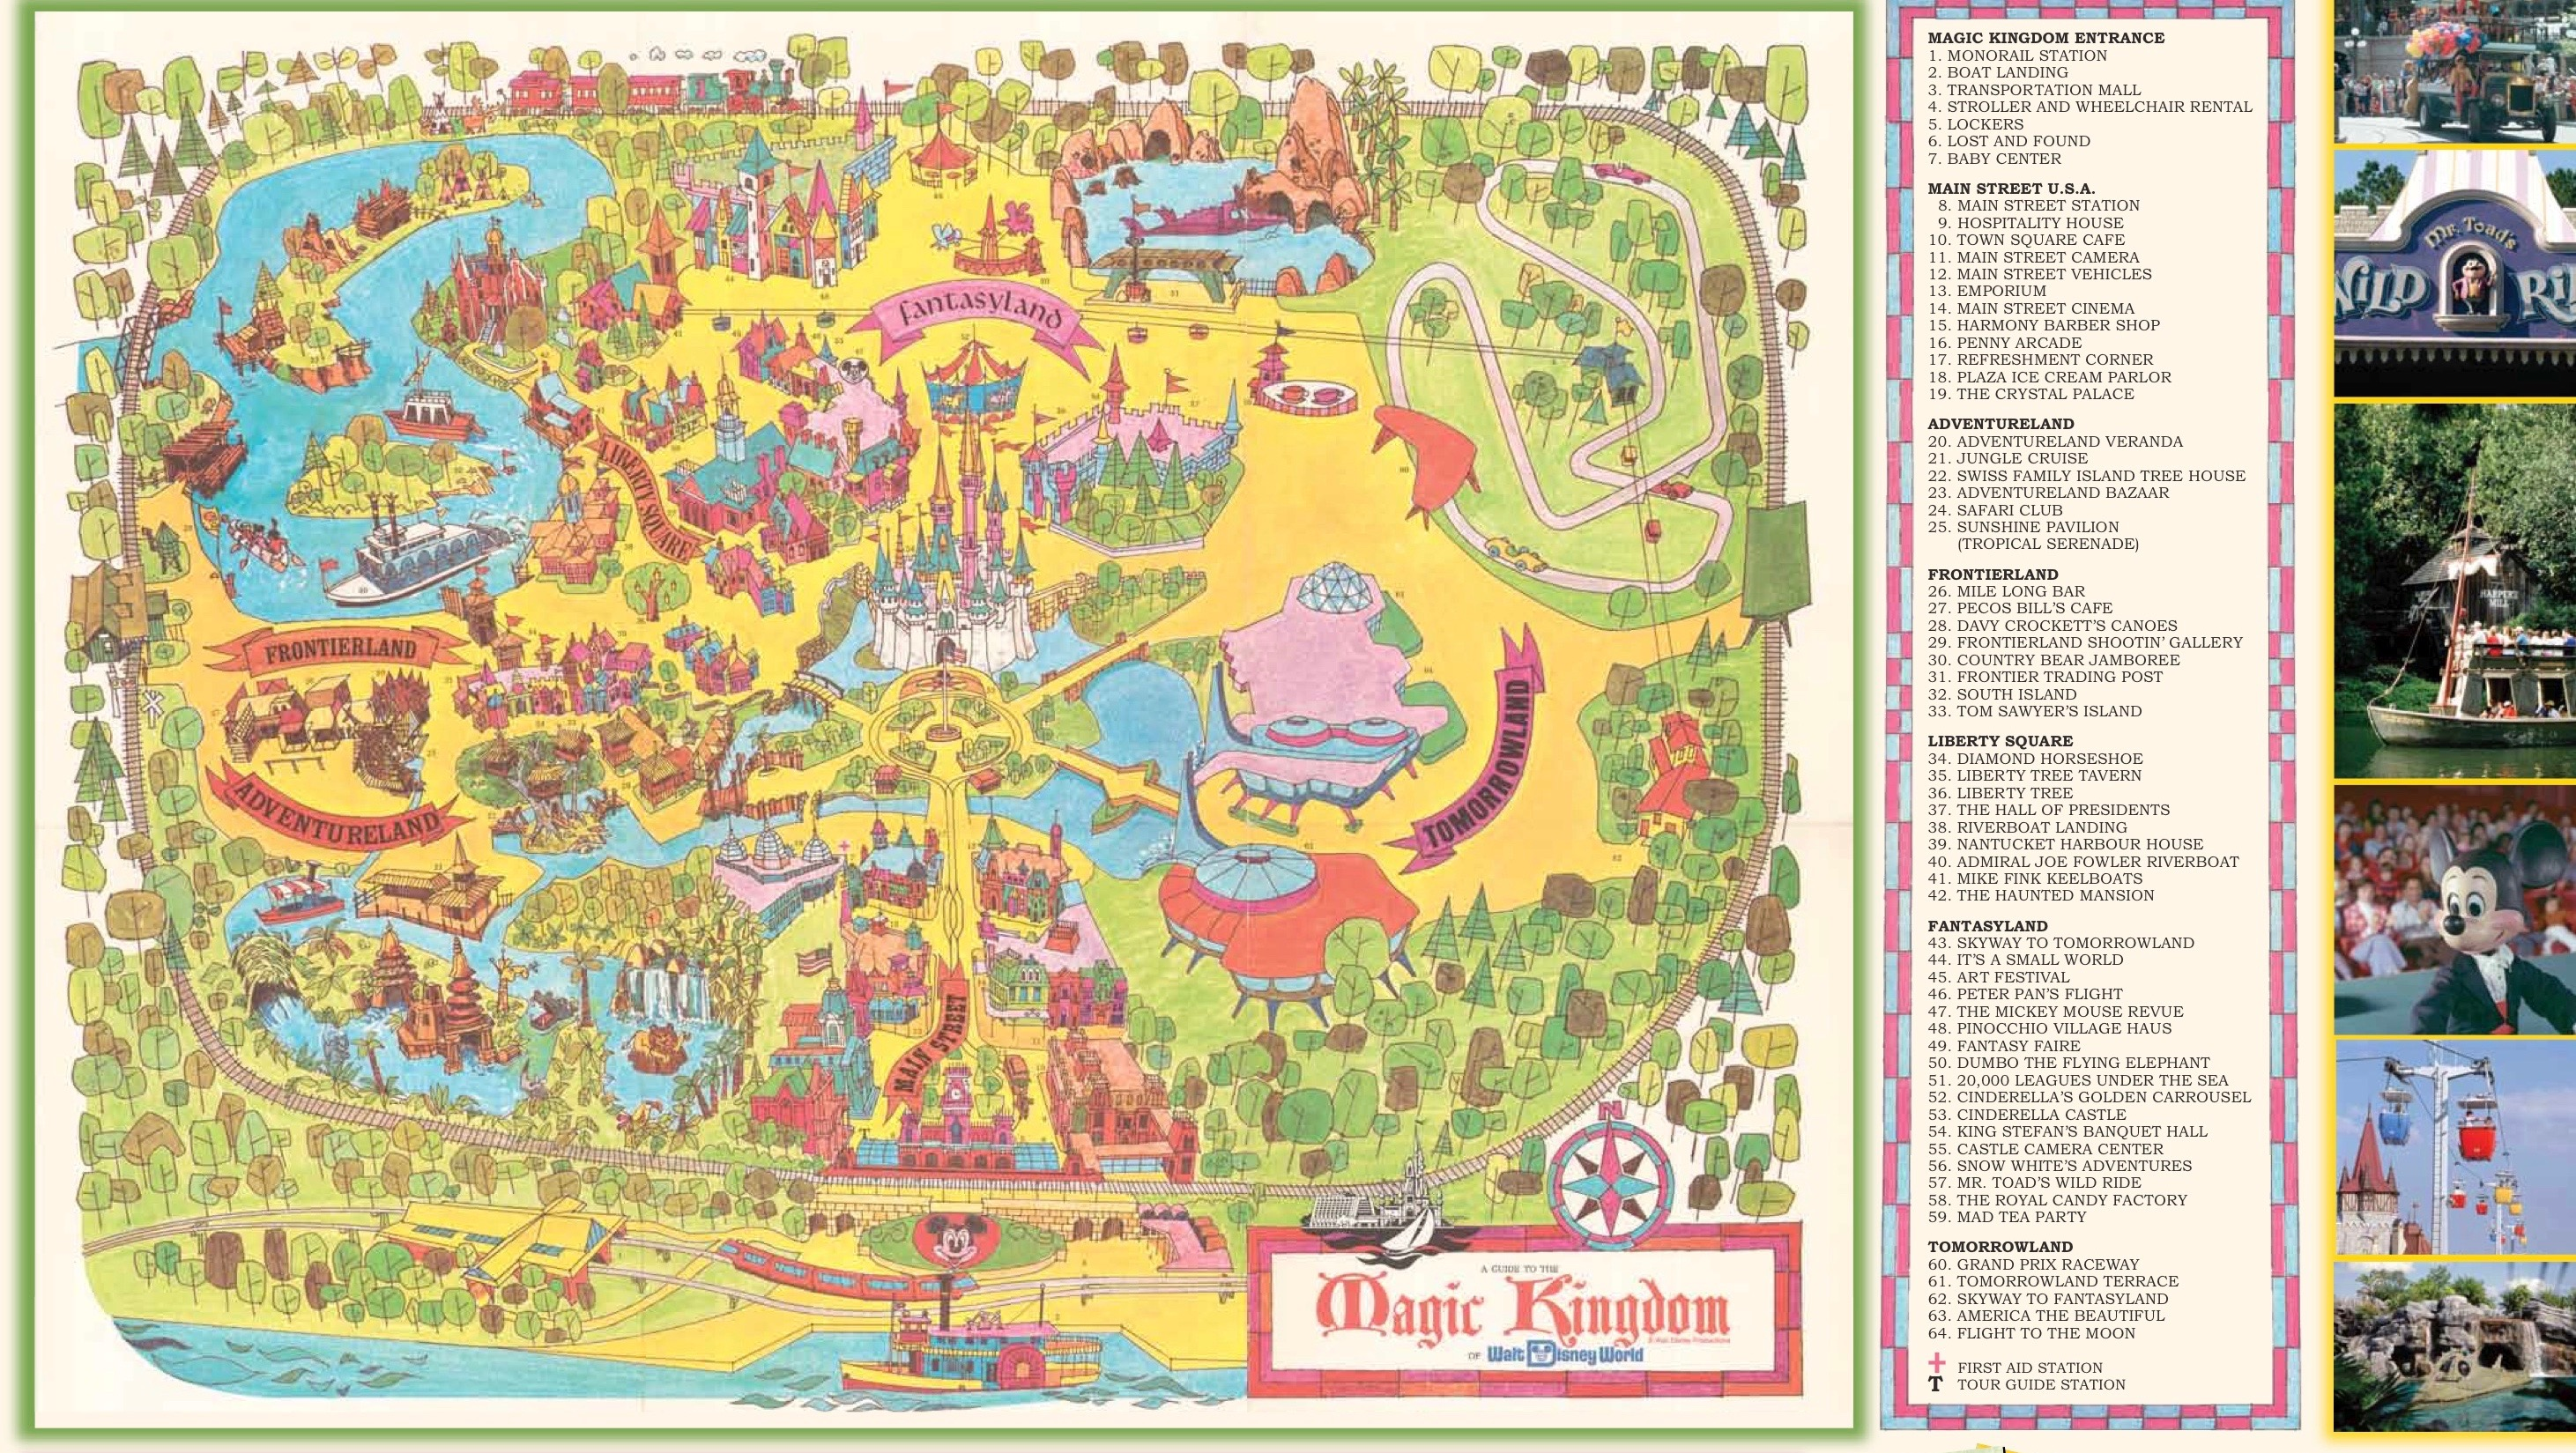 Walt disney world celebrates 45th anniversary magic kingdom 1971 map walt disney world gumiabroncs Choice Image